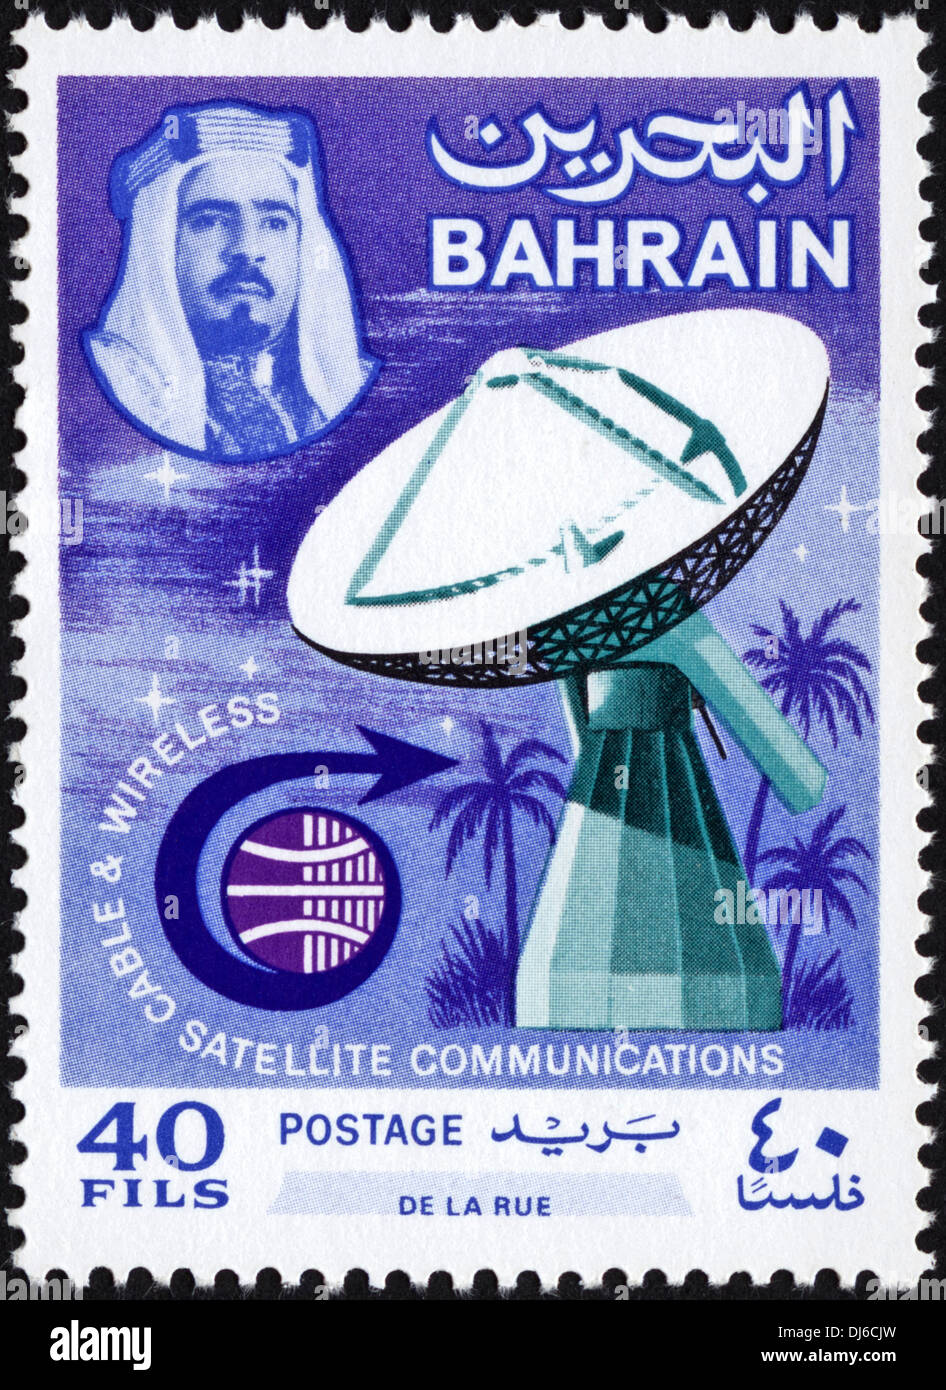 postage stamp Bahrain 40 Fils featuring Cable & Wireless Satellite Communications dated 1967 - Stock Image